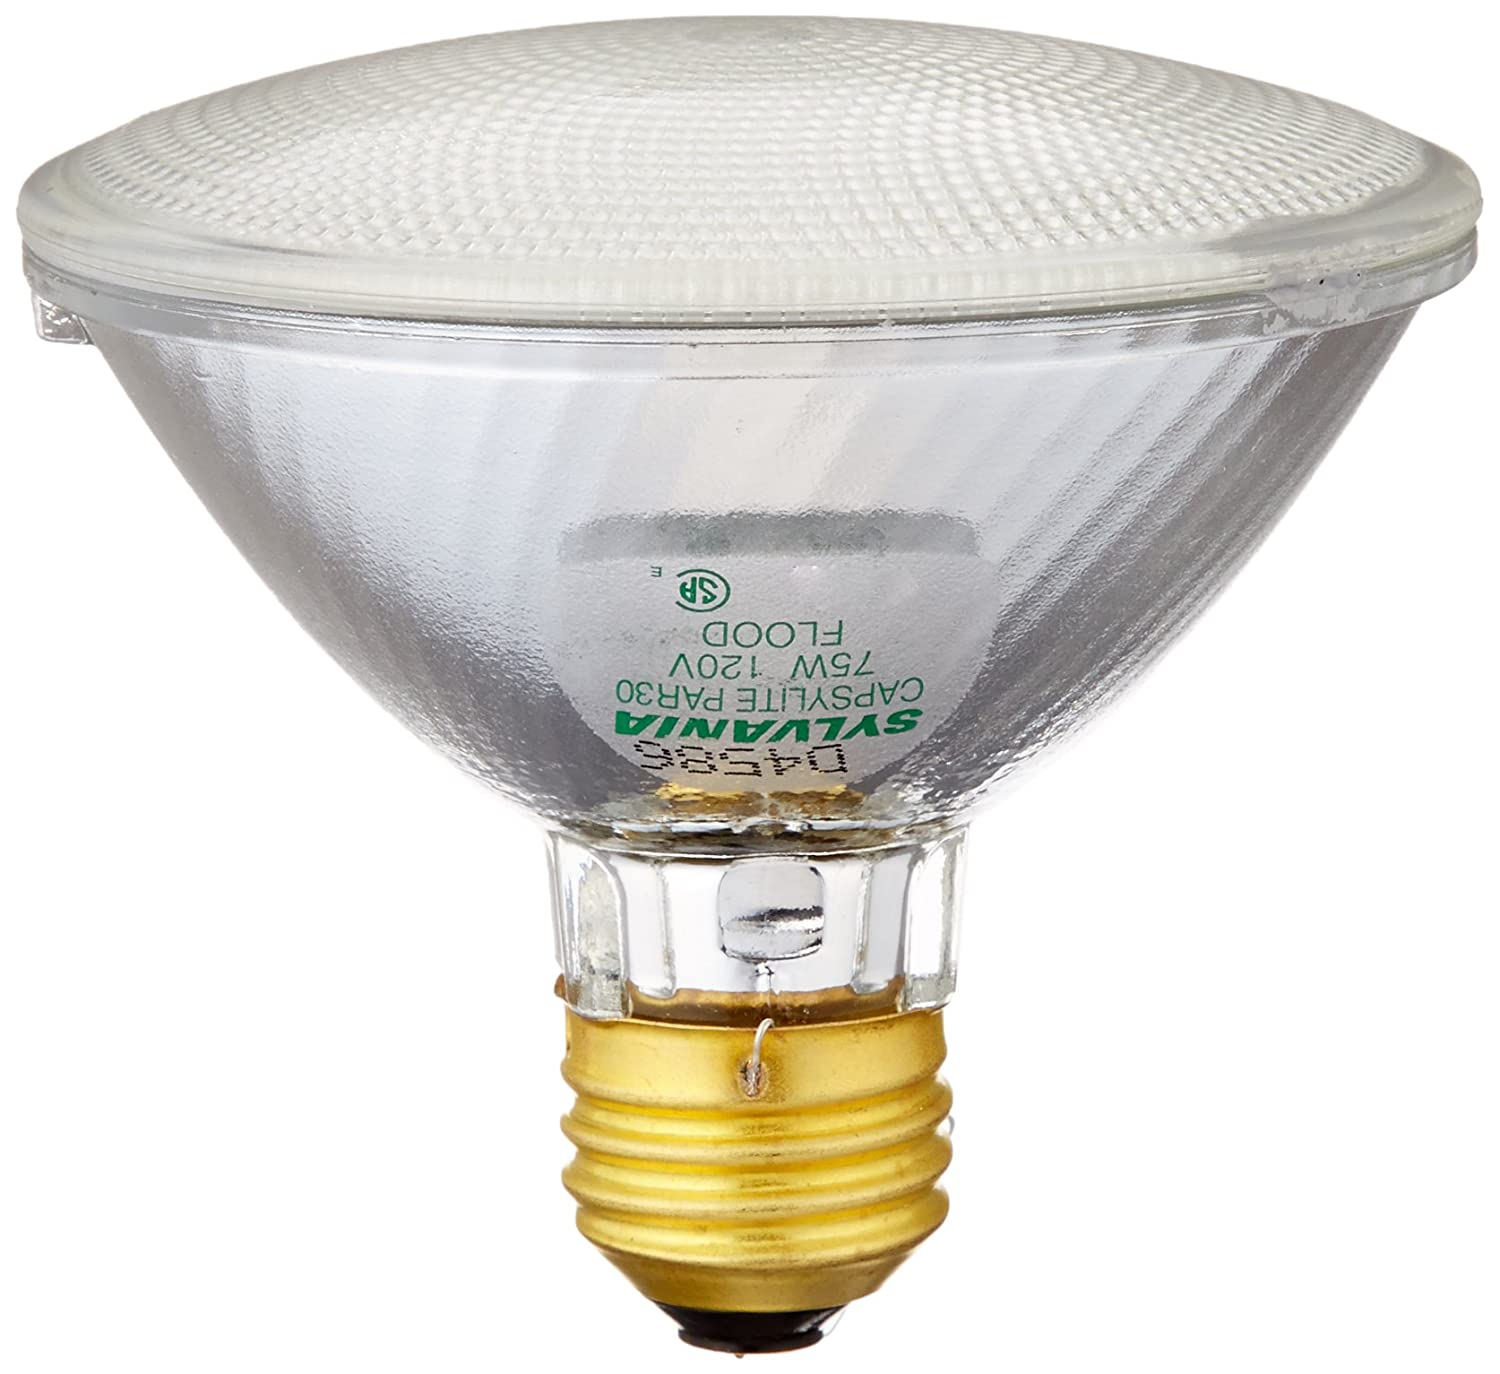 quotations get warm deals lumens on lamp equivalent com white cheap line pack ultra find shopping jackyled bulb alibaba at led guides